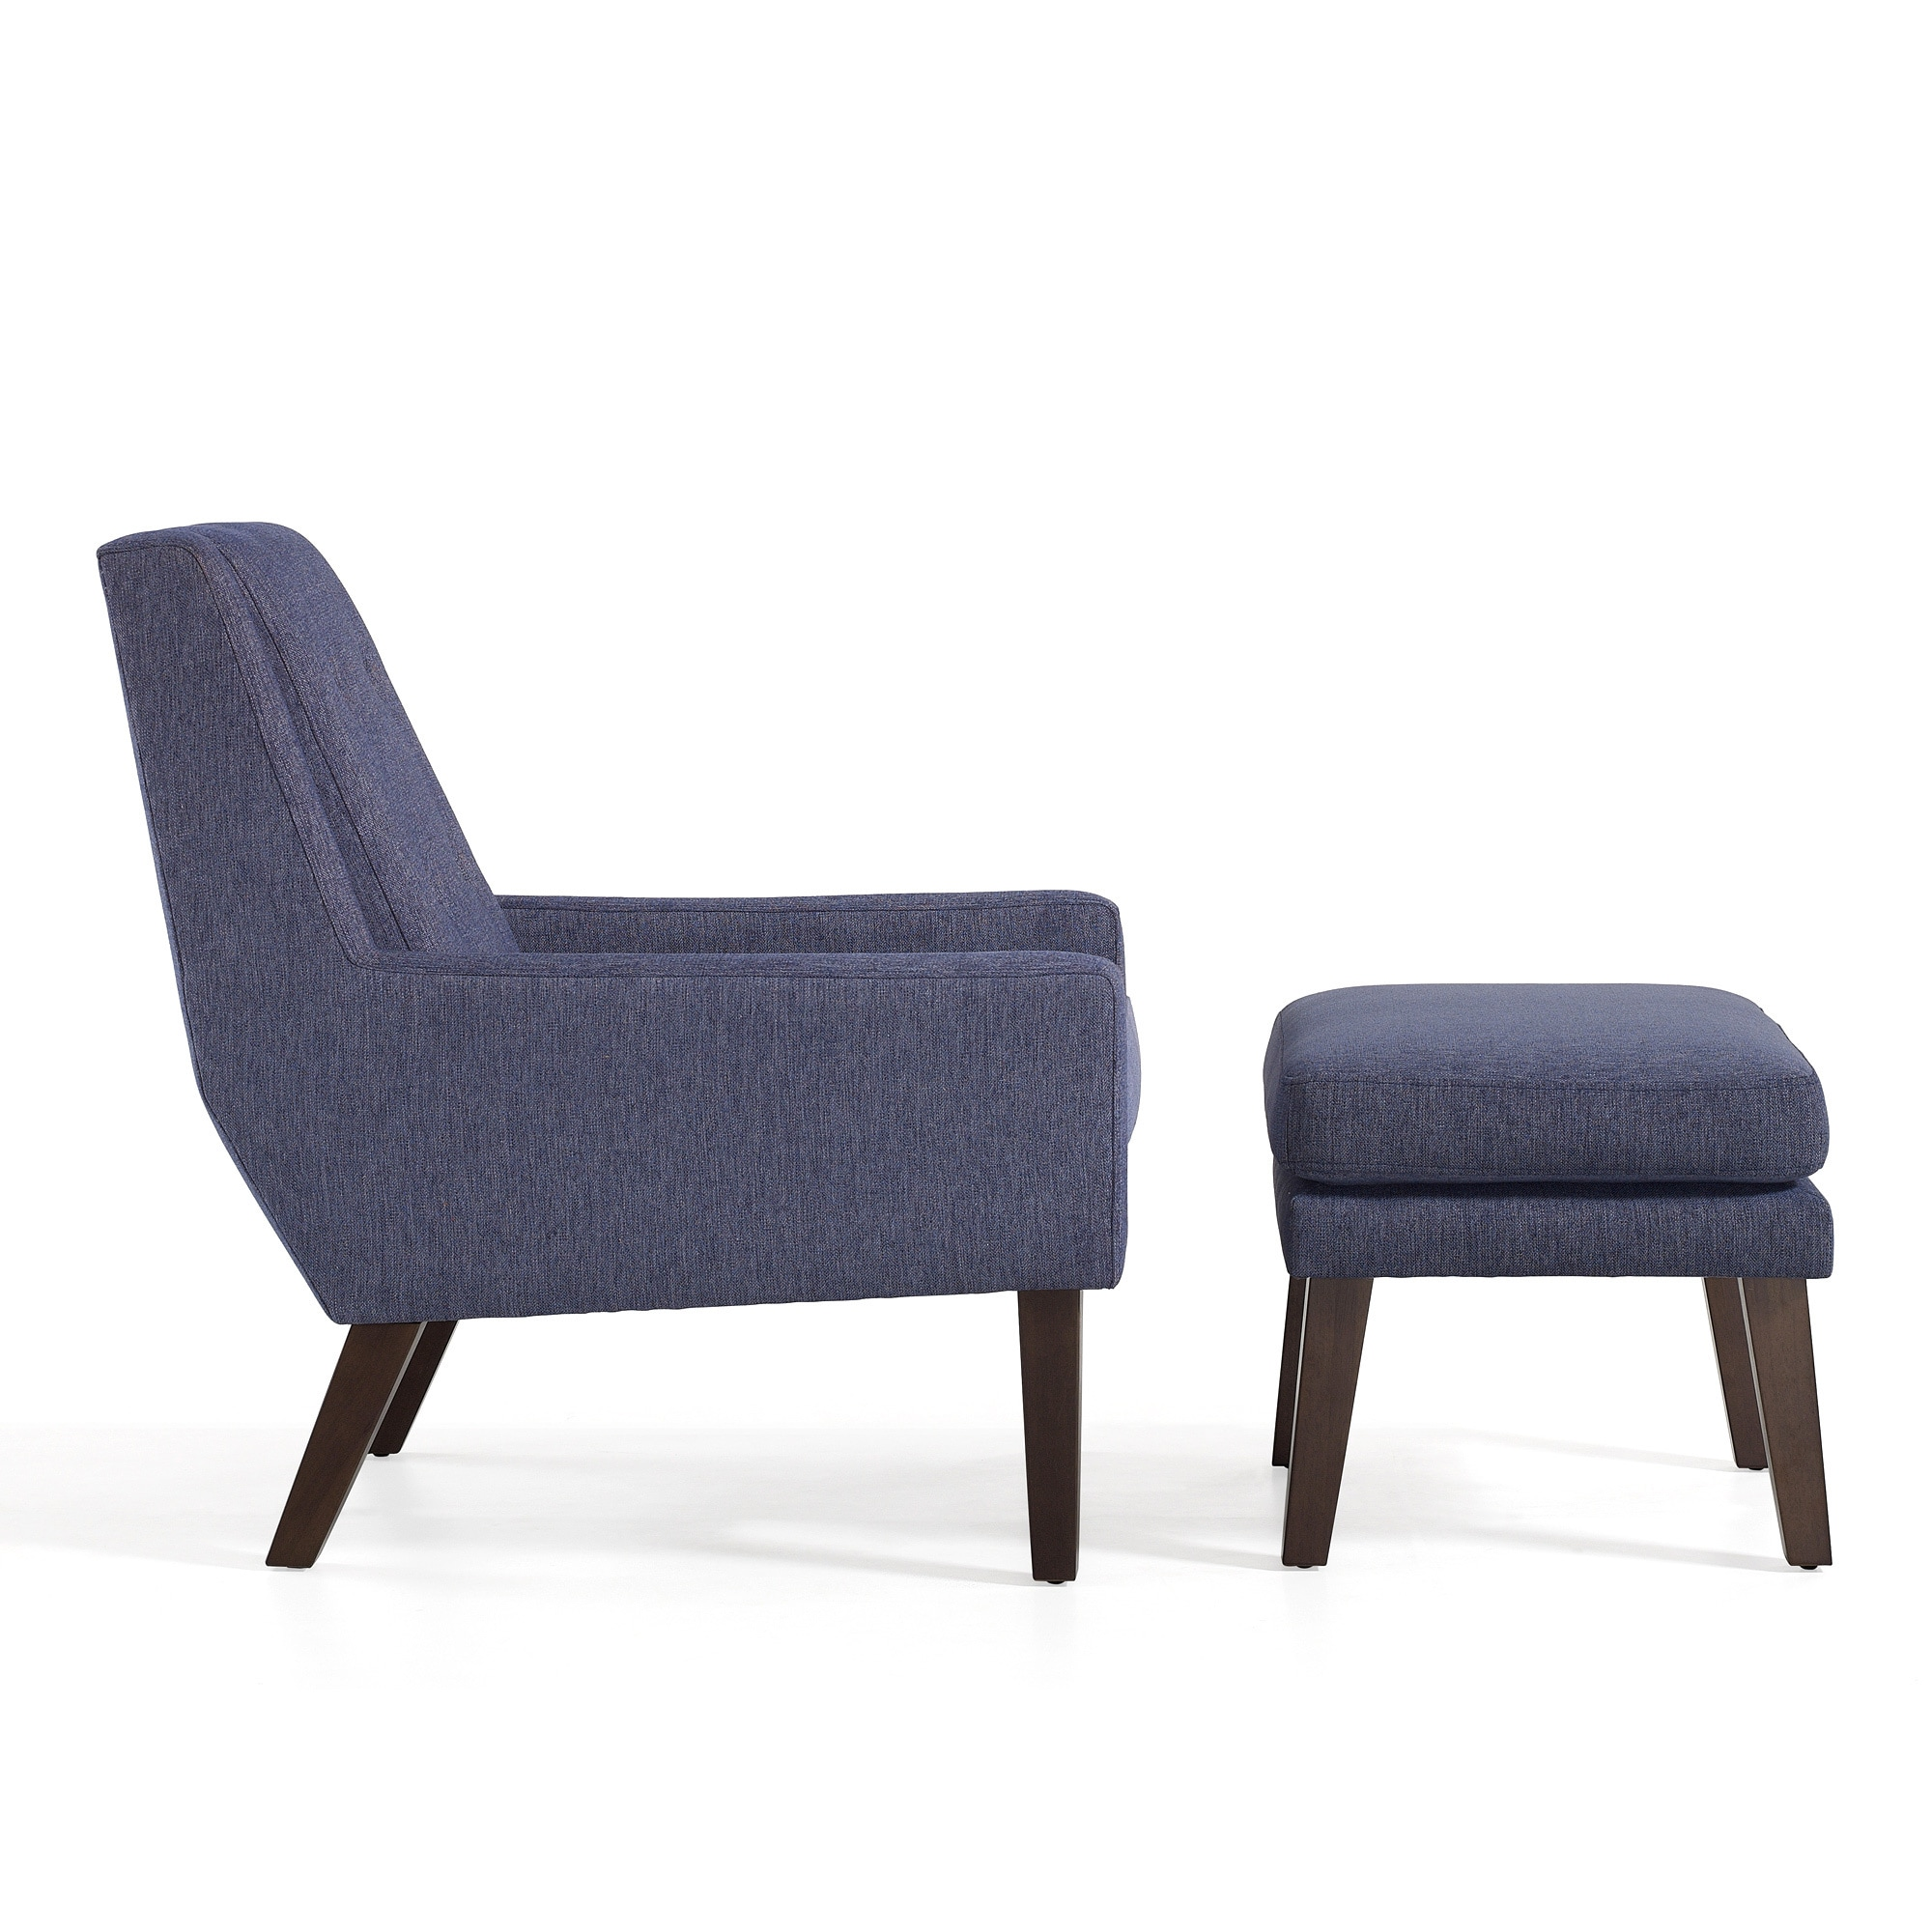 overstock ottomans shipping and chair modern classic q free chairs home today inspire accent ottoman garden uptown tribecca by product